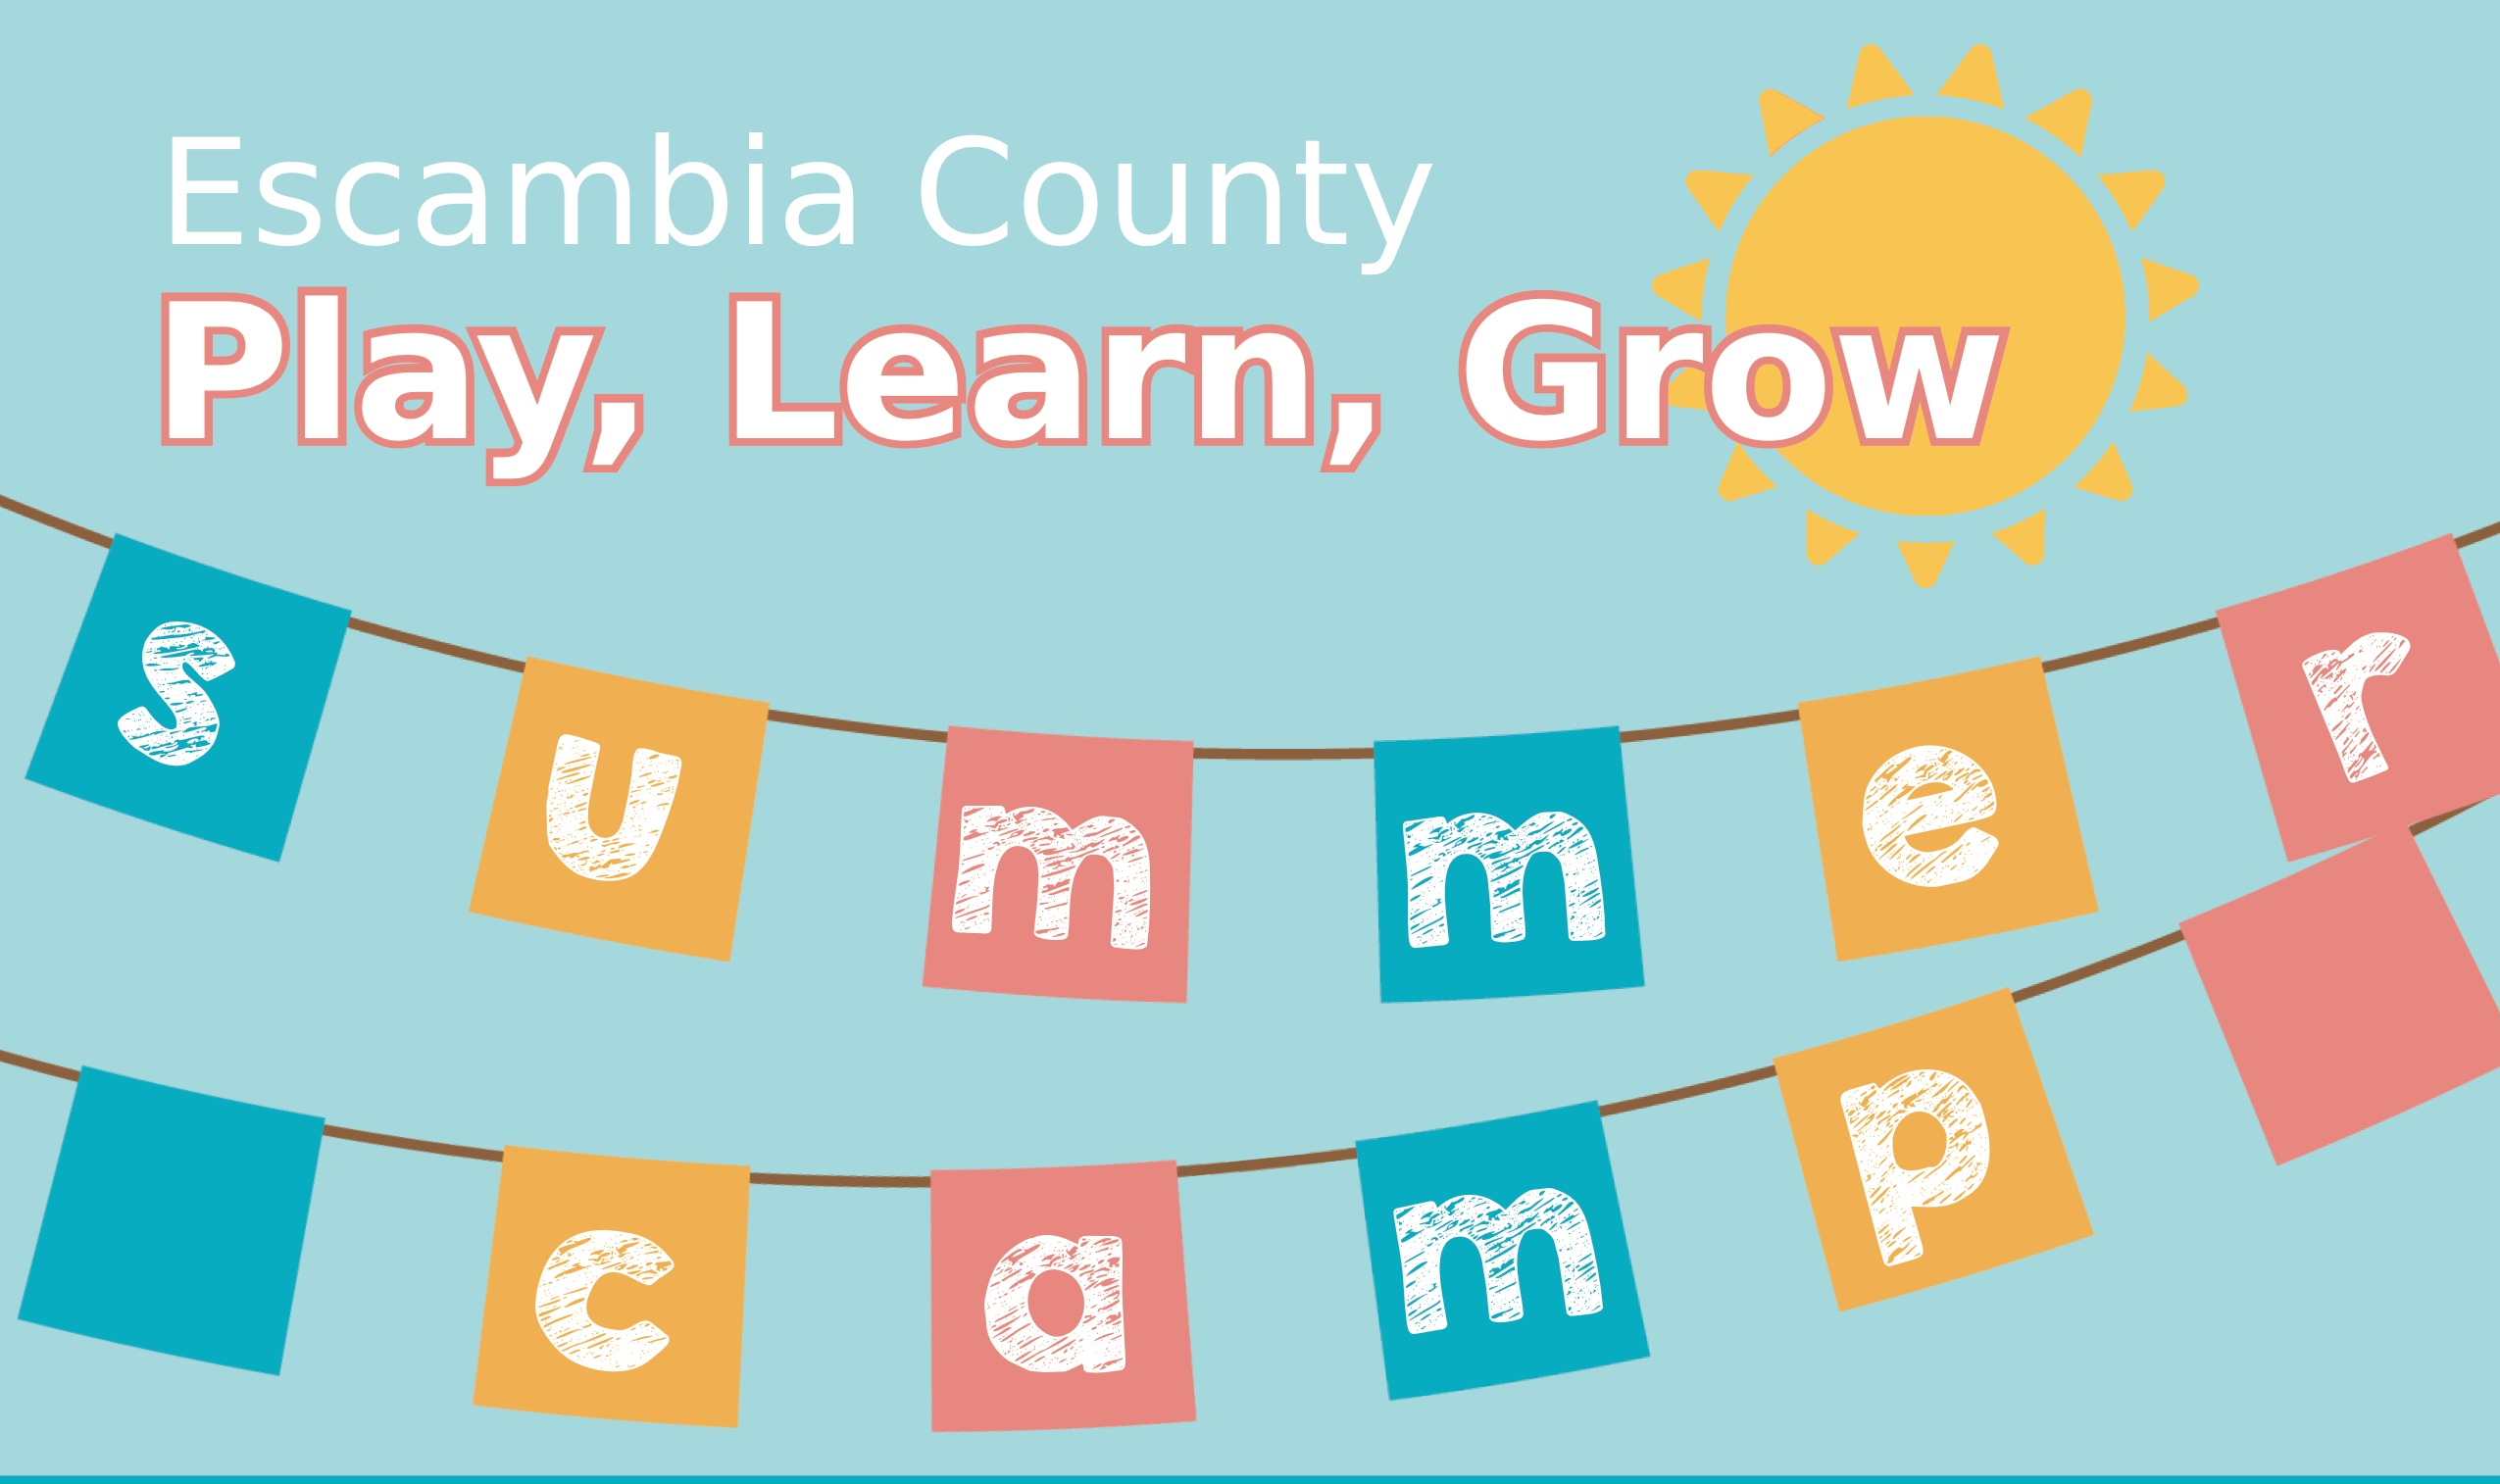 Play, Learn, Grow summer camp